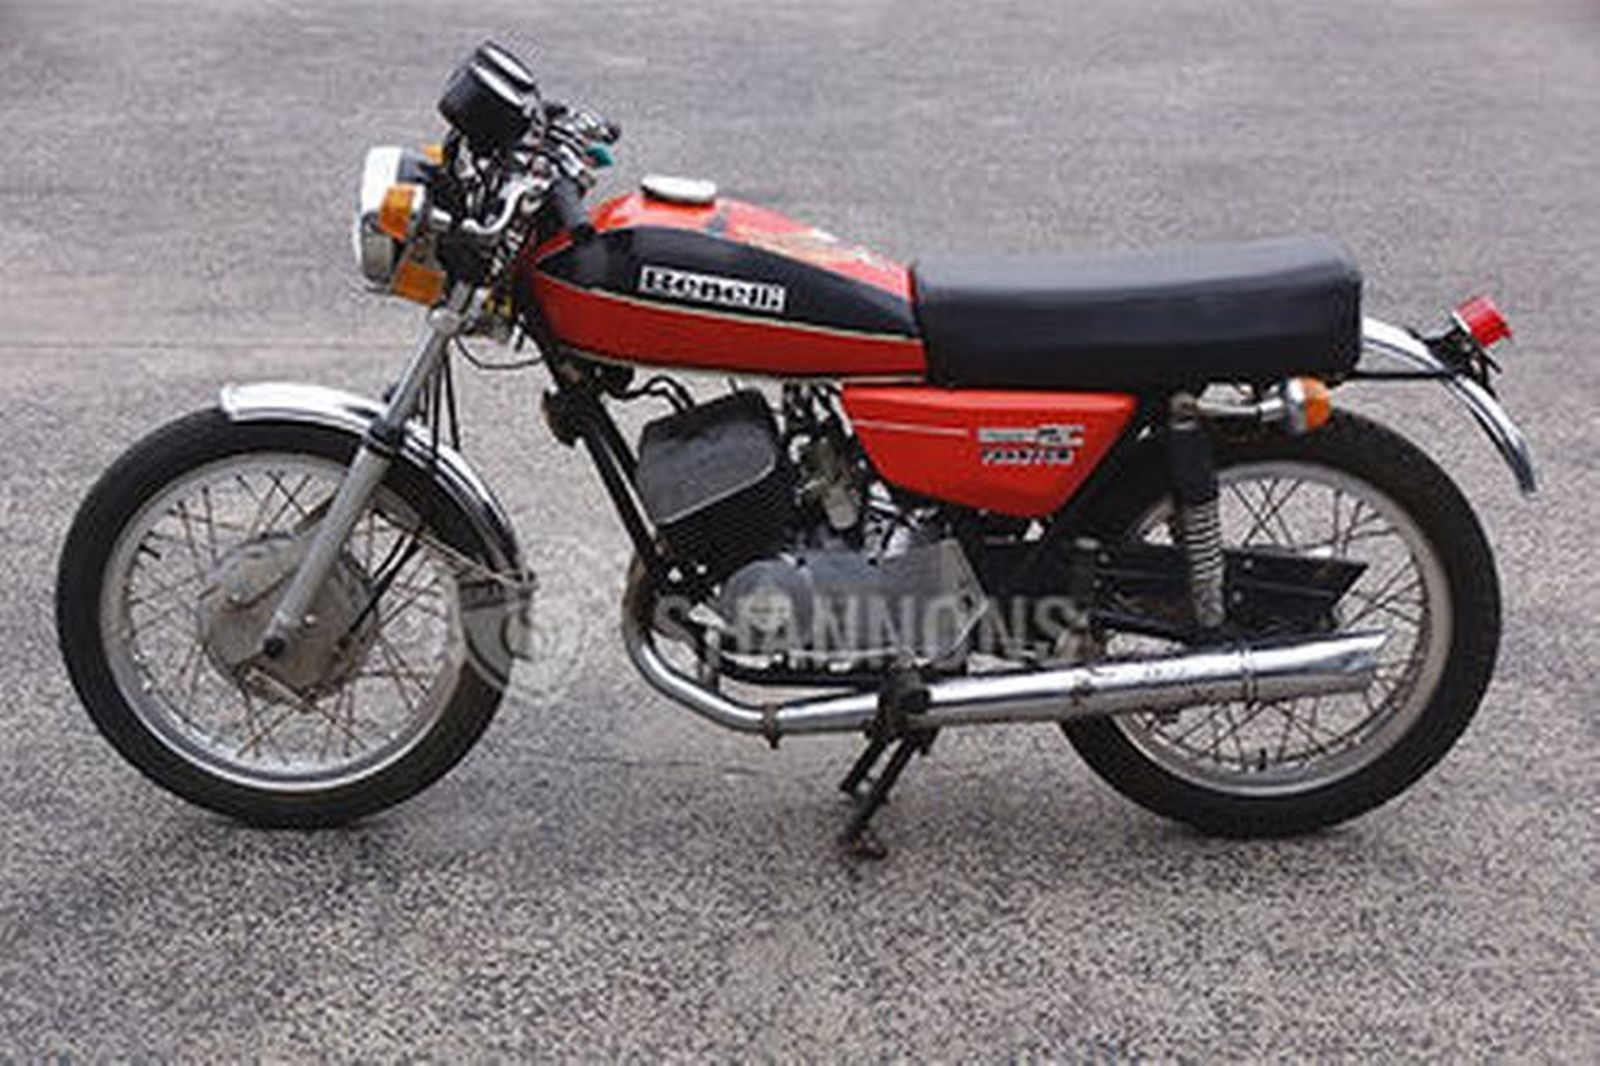 Sold: Benelli 250 Twin 2C 'Phantom' Motorcycle Auctions